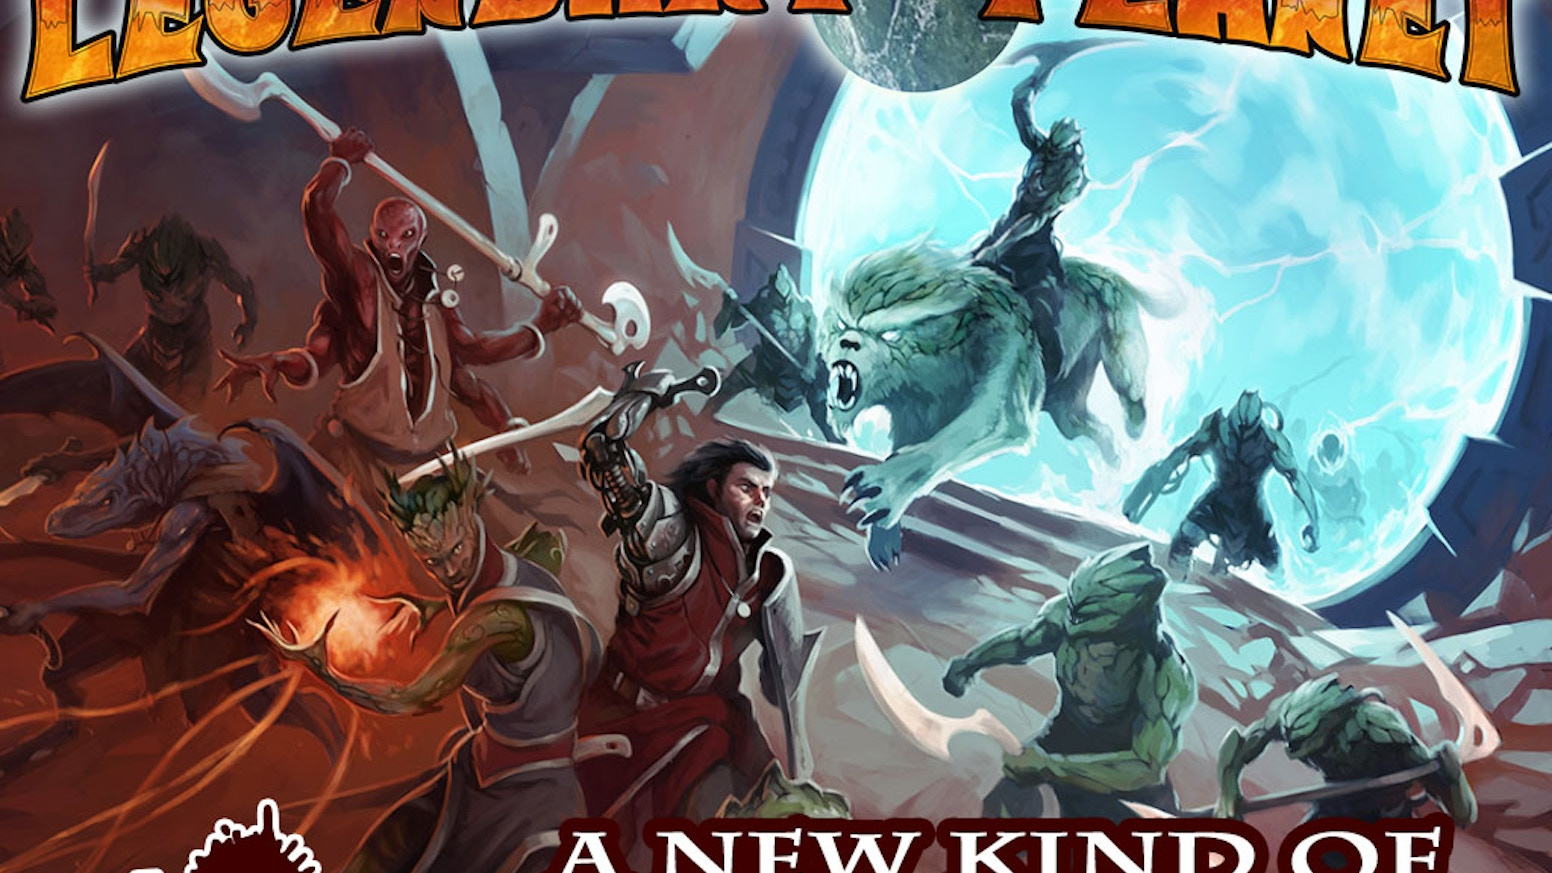 Legendary Games brings you an epic sword & planet adventure saga for Pathfinder and 5th Edition that takes you across the multiverse!